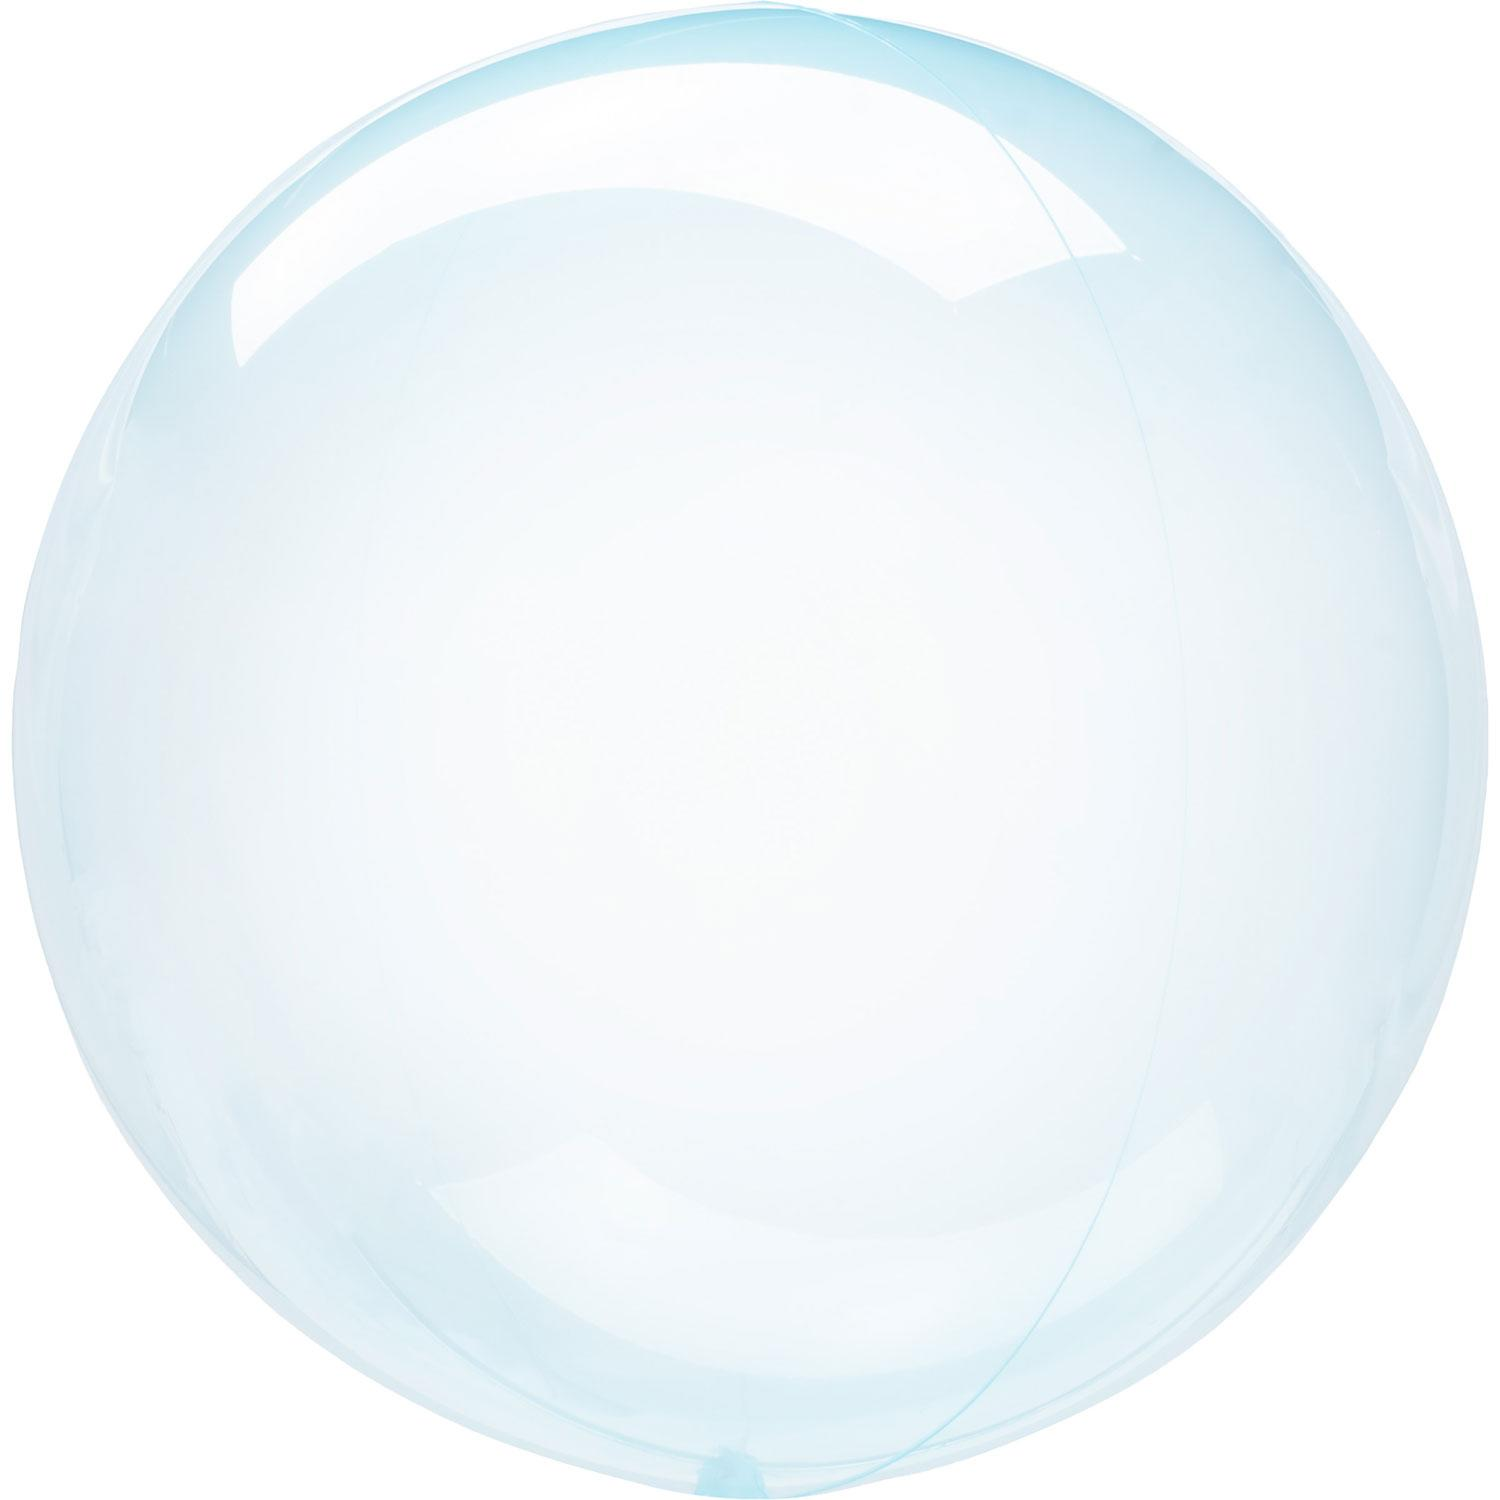 Crystal Clearz Bubble Balloon Blue